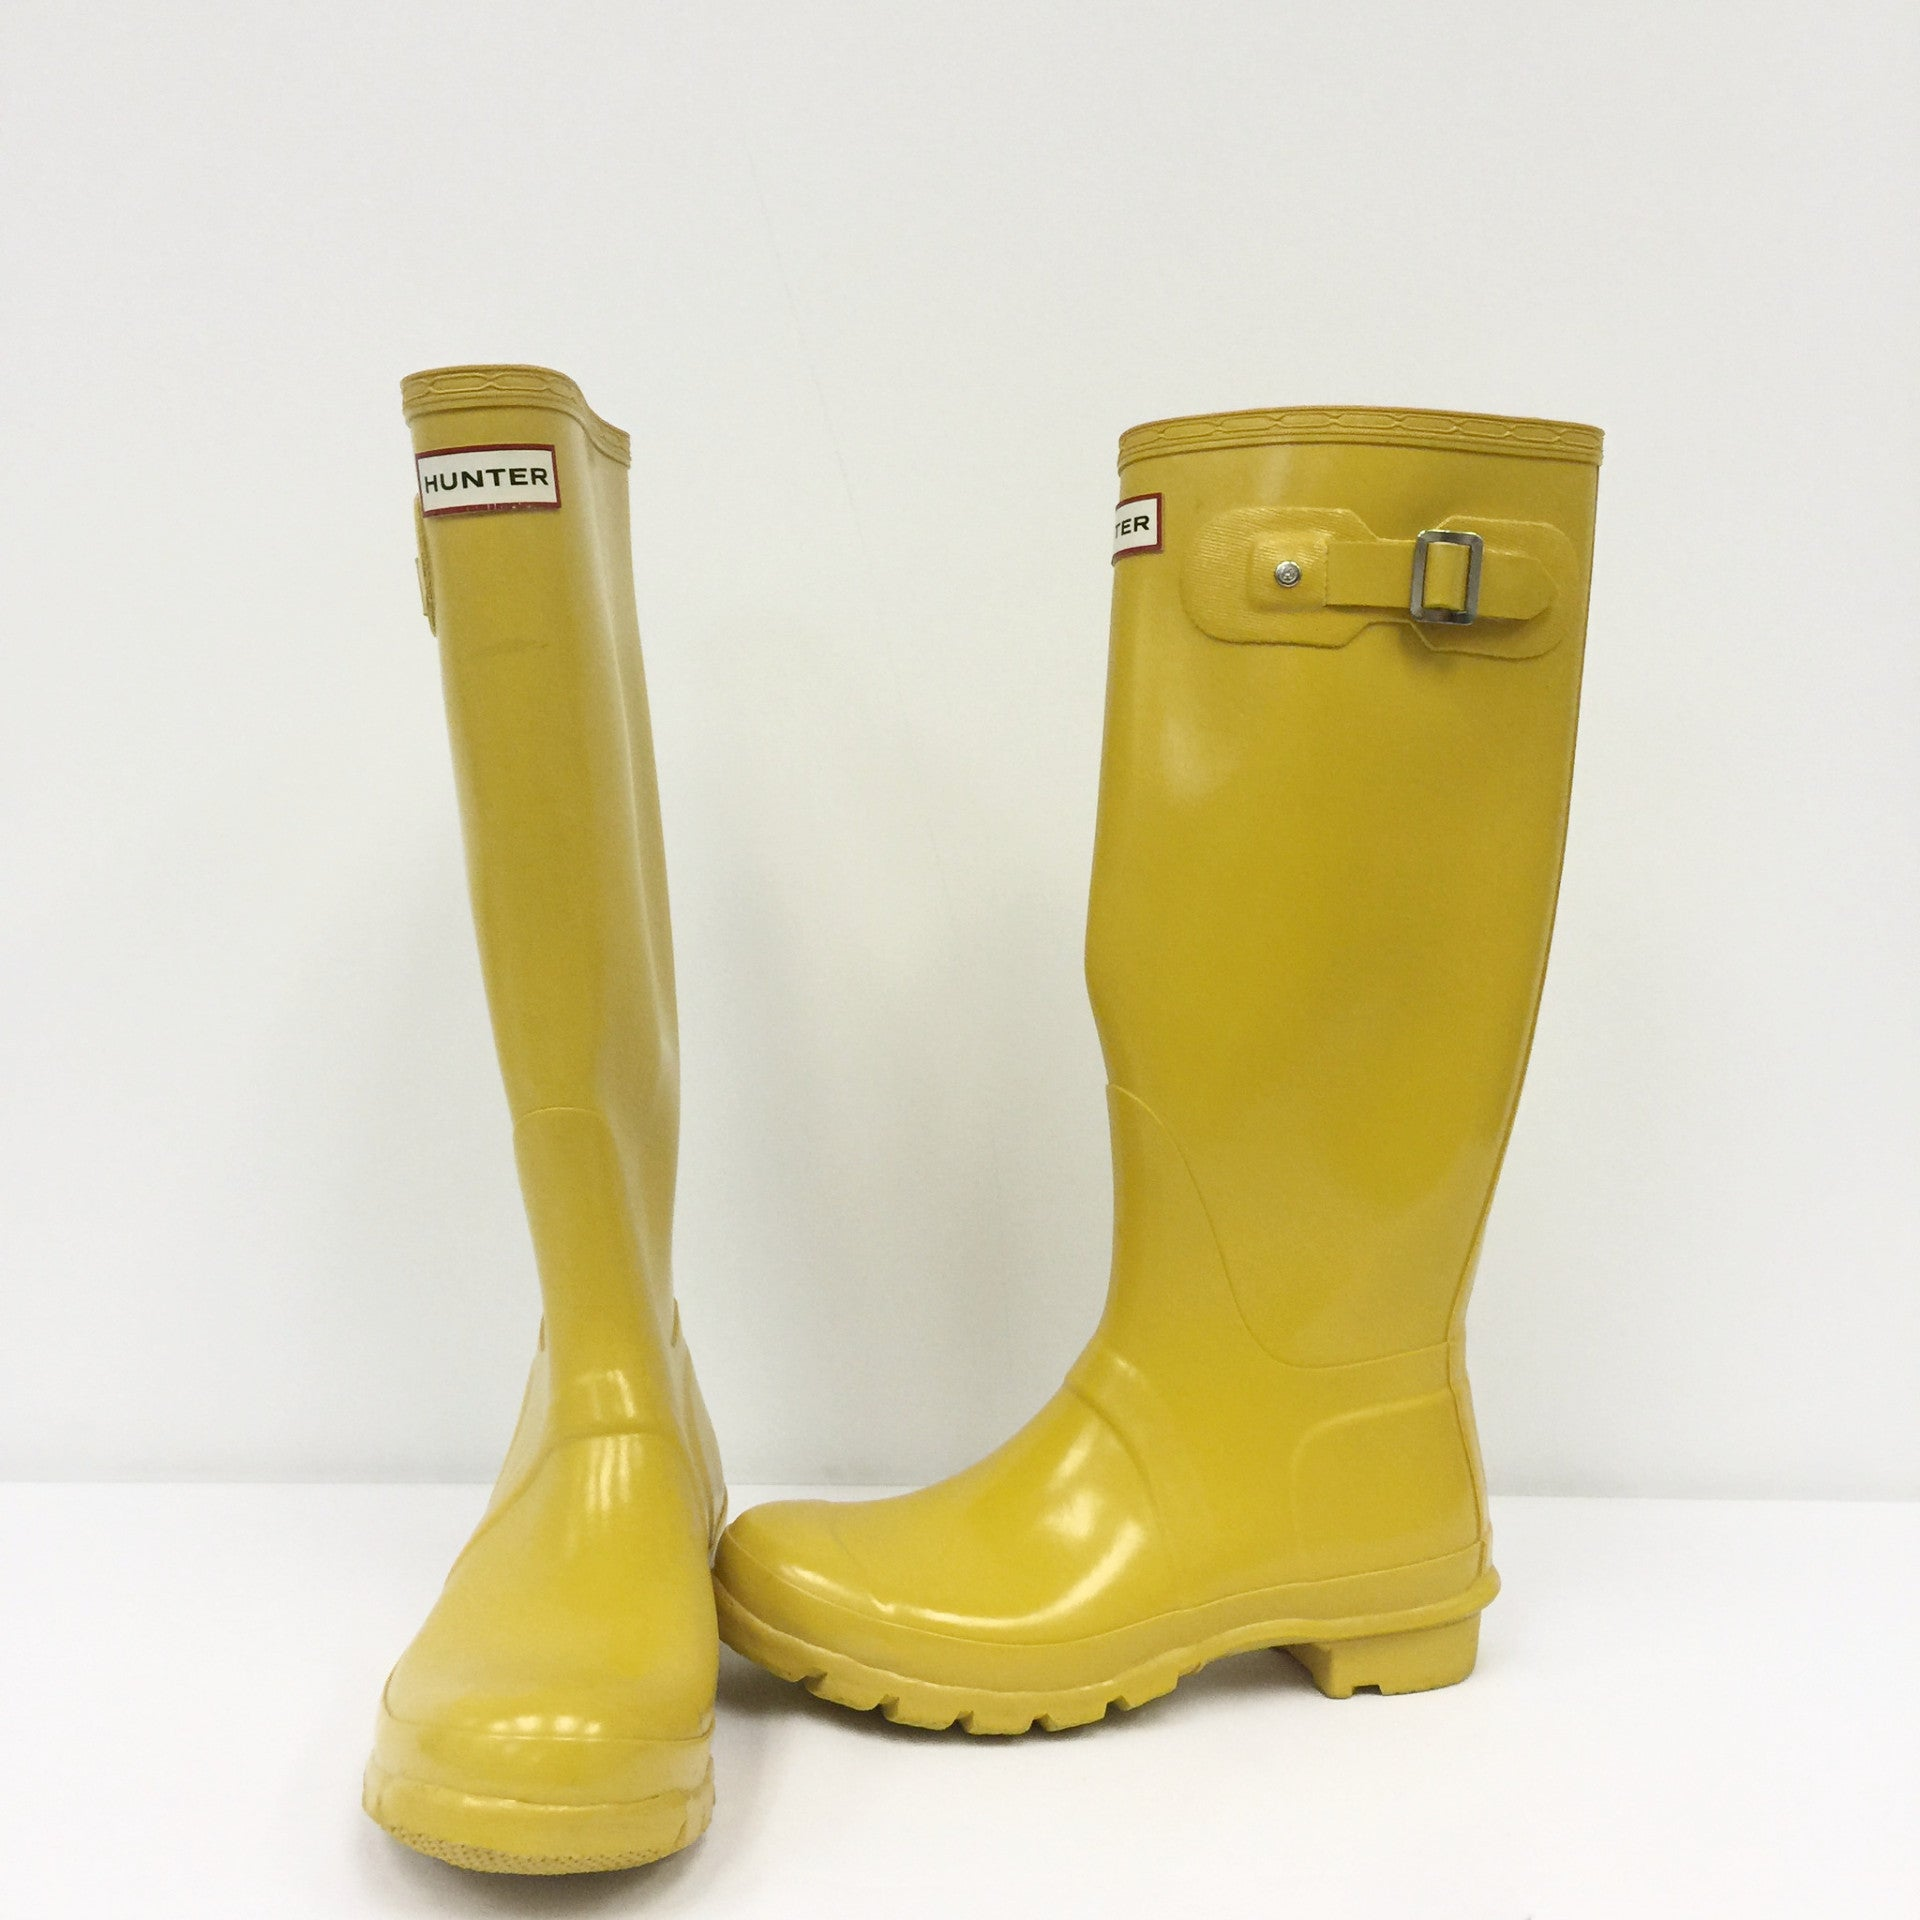 Hunter Boots (Yellow)